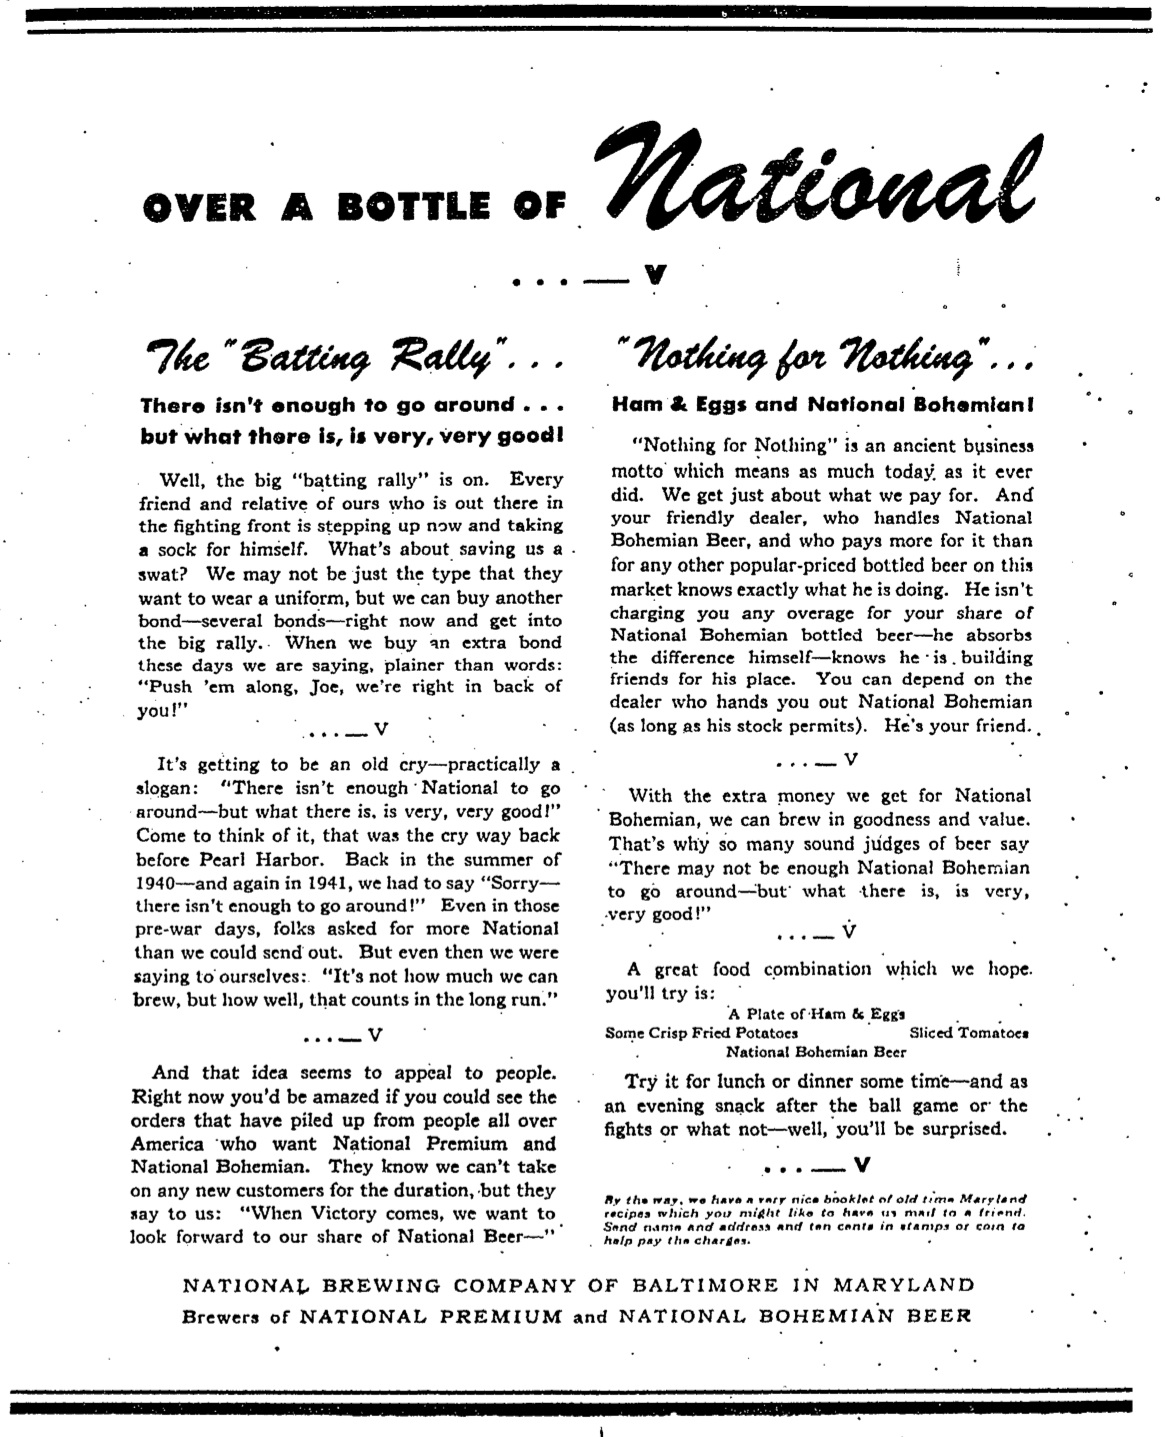 National Brewing Company of Baltimore